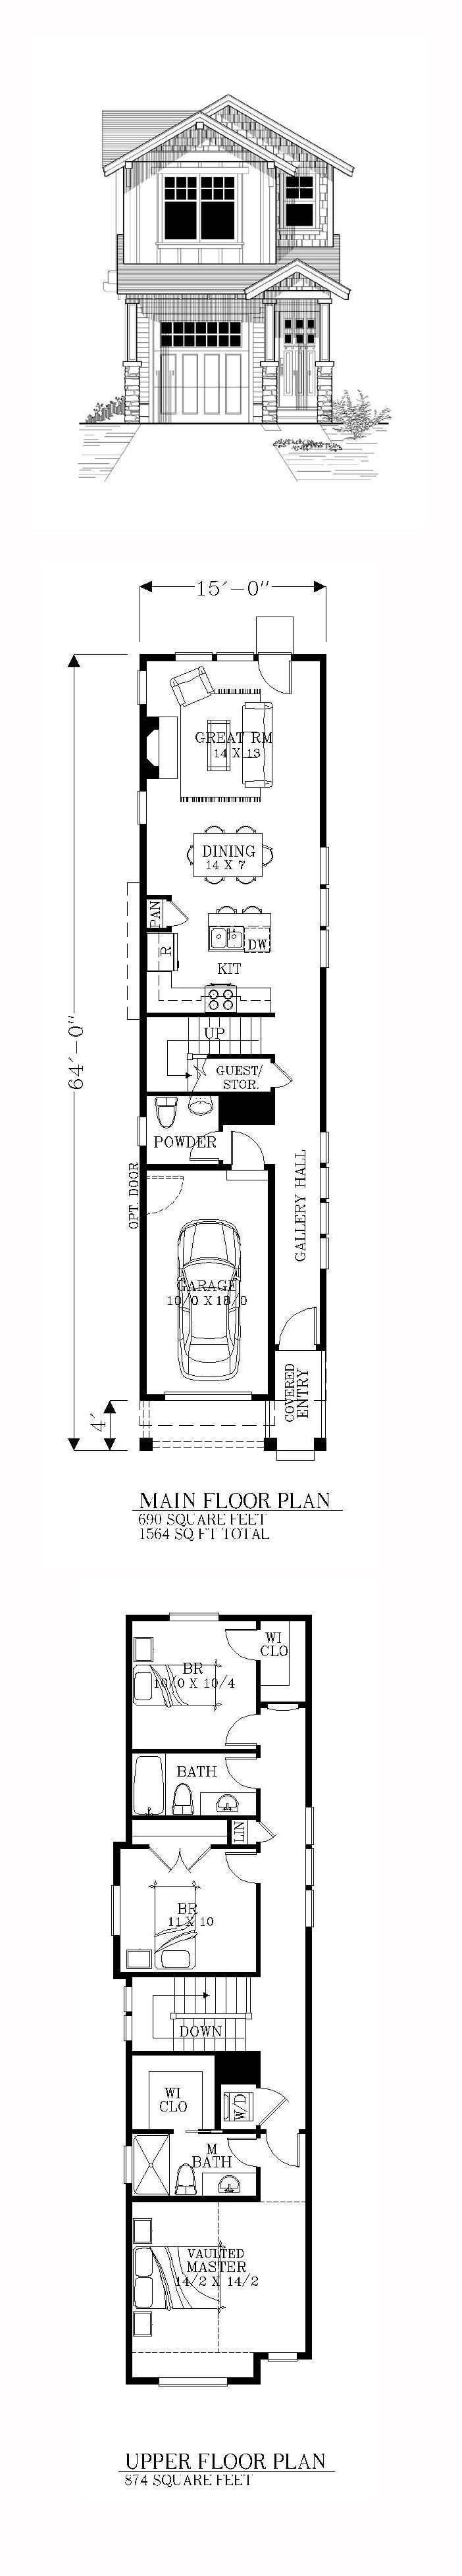 Astounding 17 Best Ideas About Narrow House Plans On Pinterest Small Home Largest Home Design Picture Inspirations Pitcheantrous